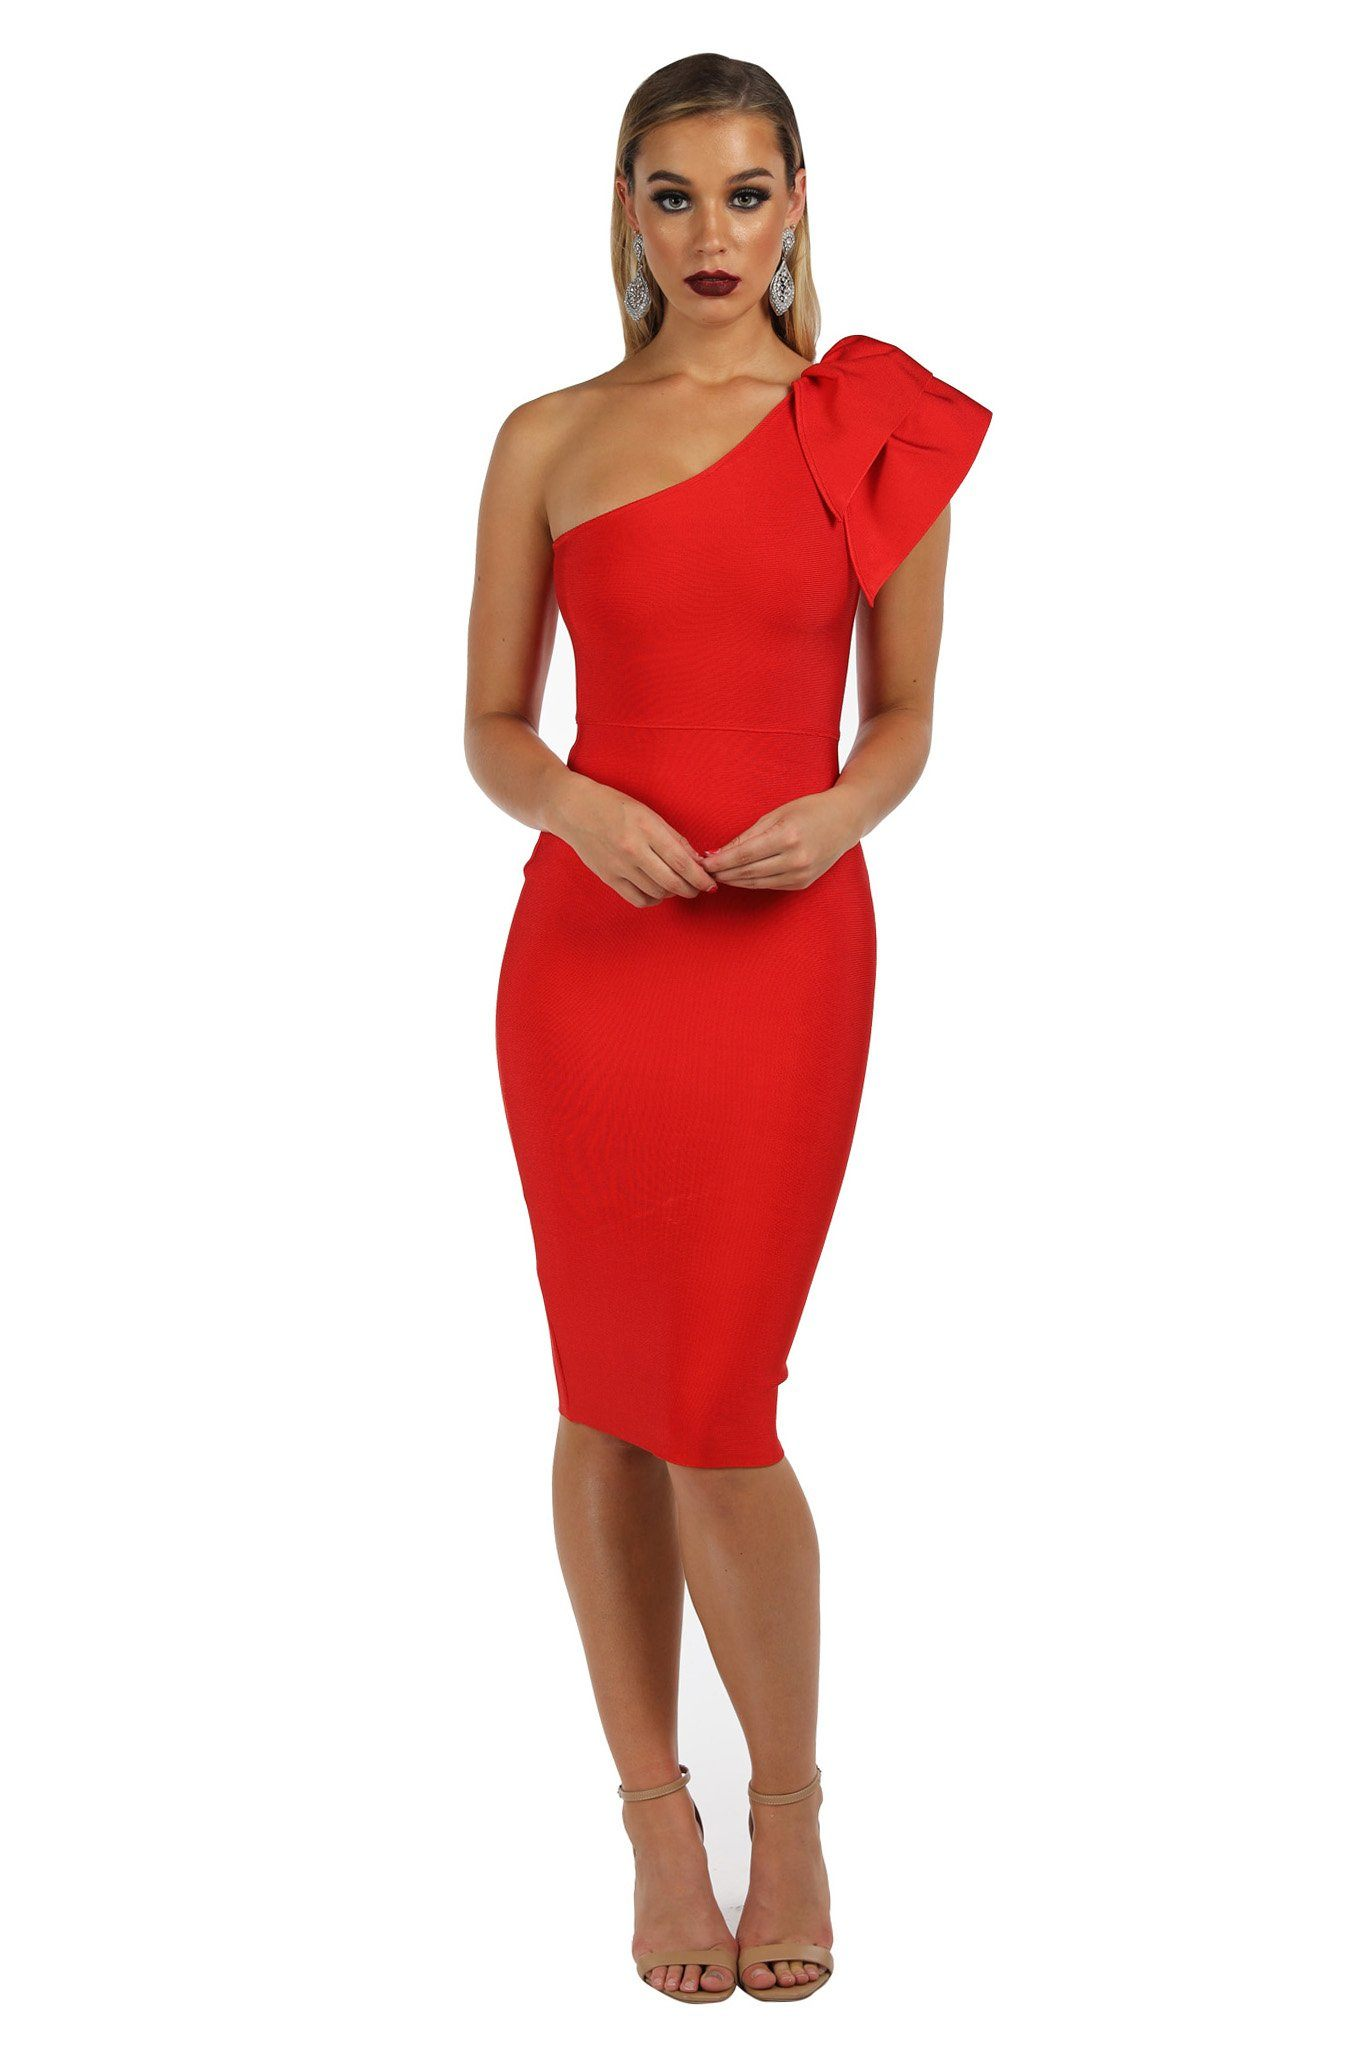 Red one-shoulder knee length tight fitted bandage dress with ruffle detail over one shoulder